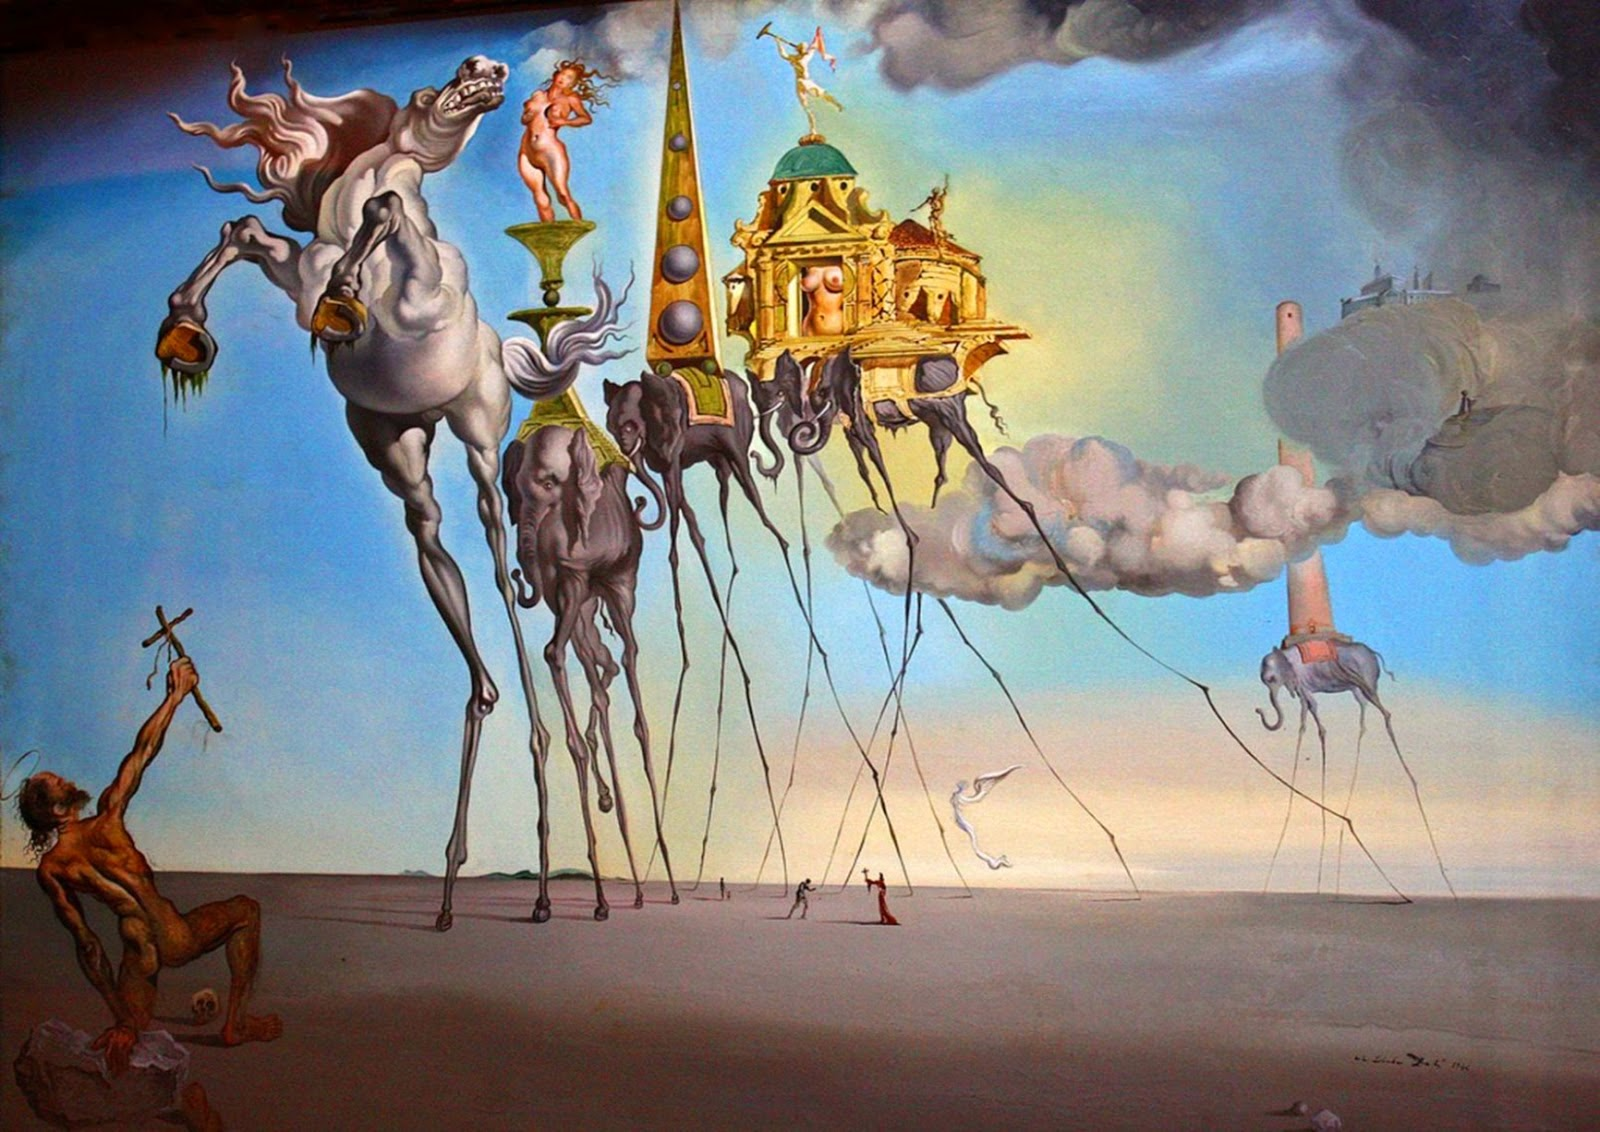 surrealism of the temptation of saint Adam mclean's study course on surrealism lesson thirteen - the temptation of st anthony competition a series of 20 to 30 minute lectures exploring.